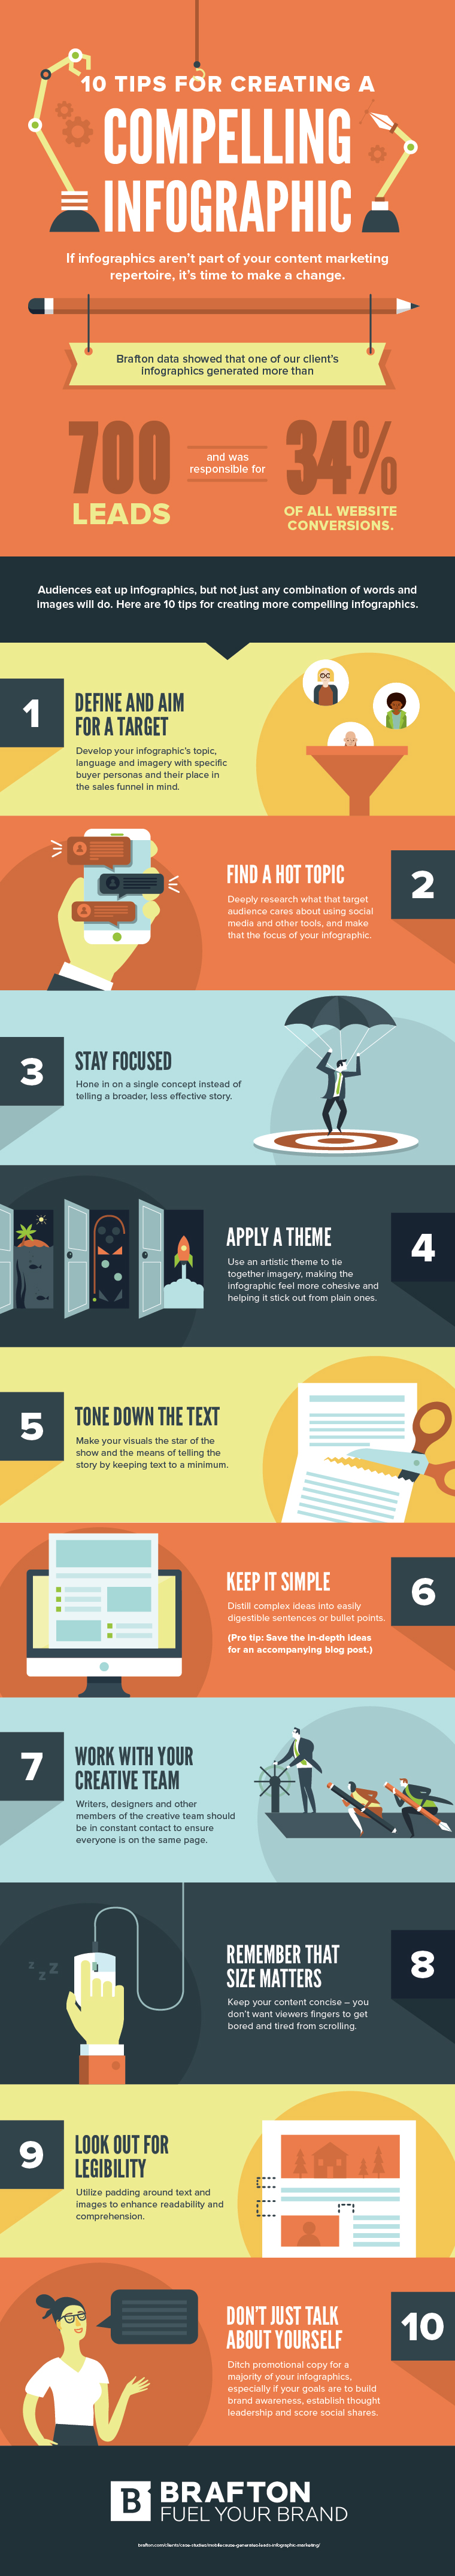 10 tips to create better infographics